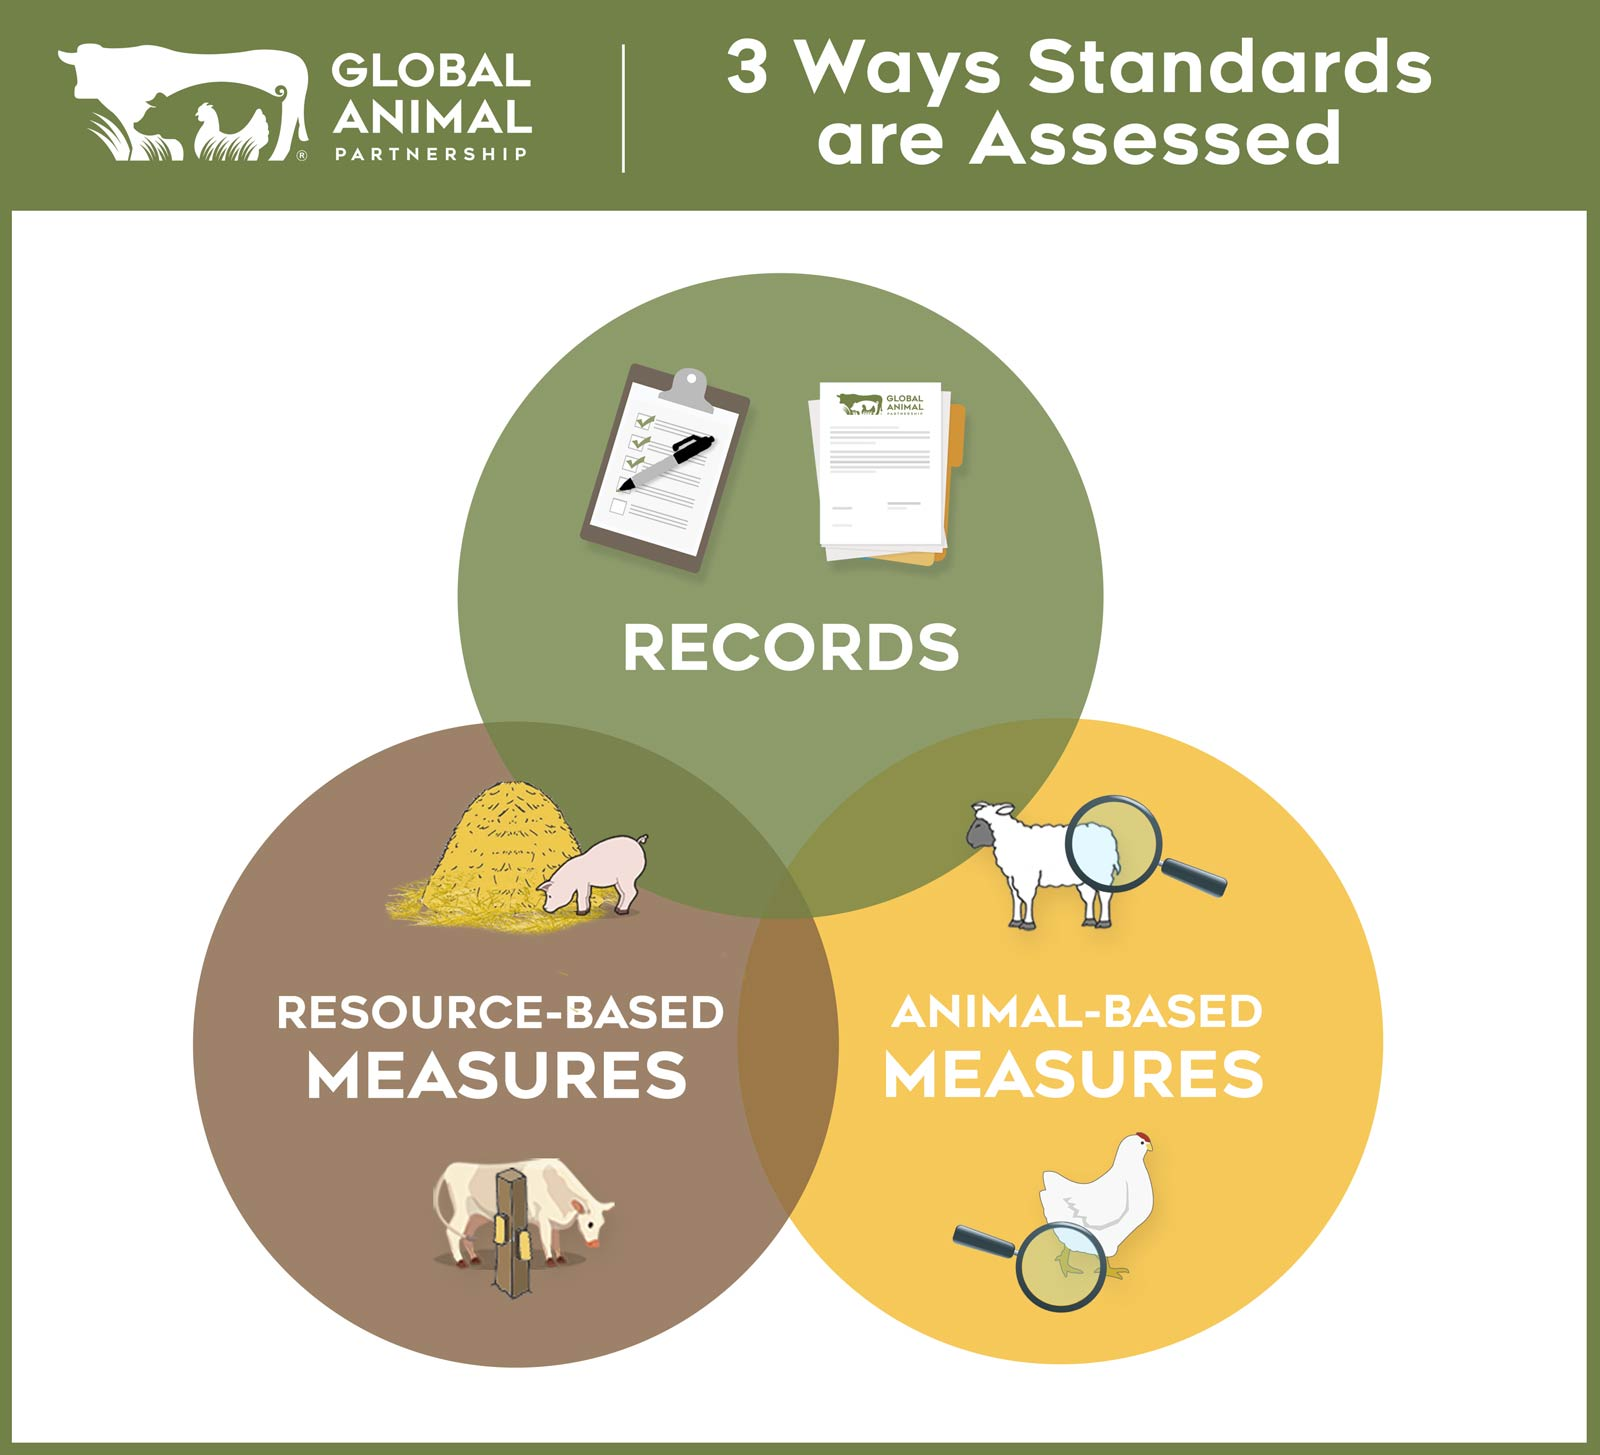 GAP Farm Audit: 3 Ways Standards are Assessed